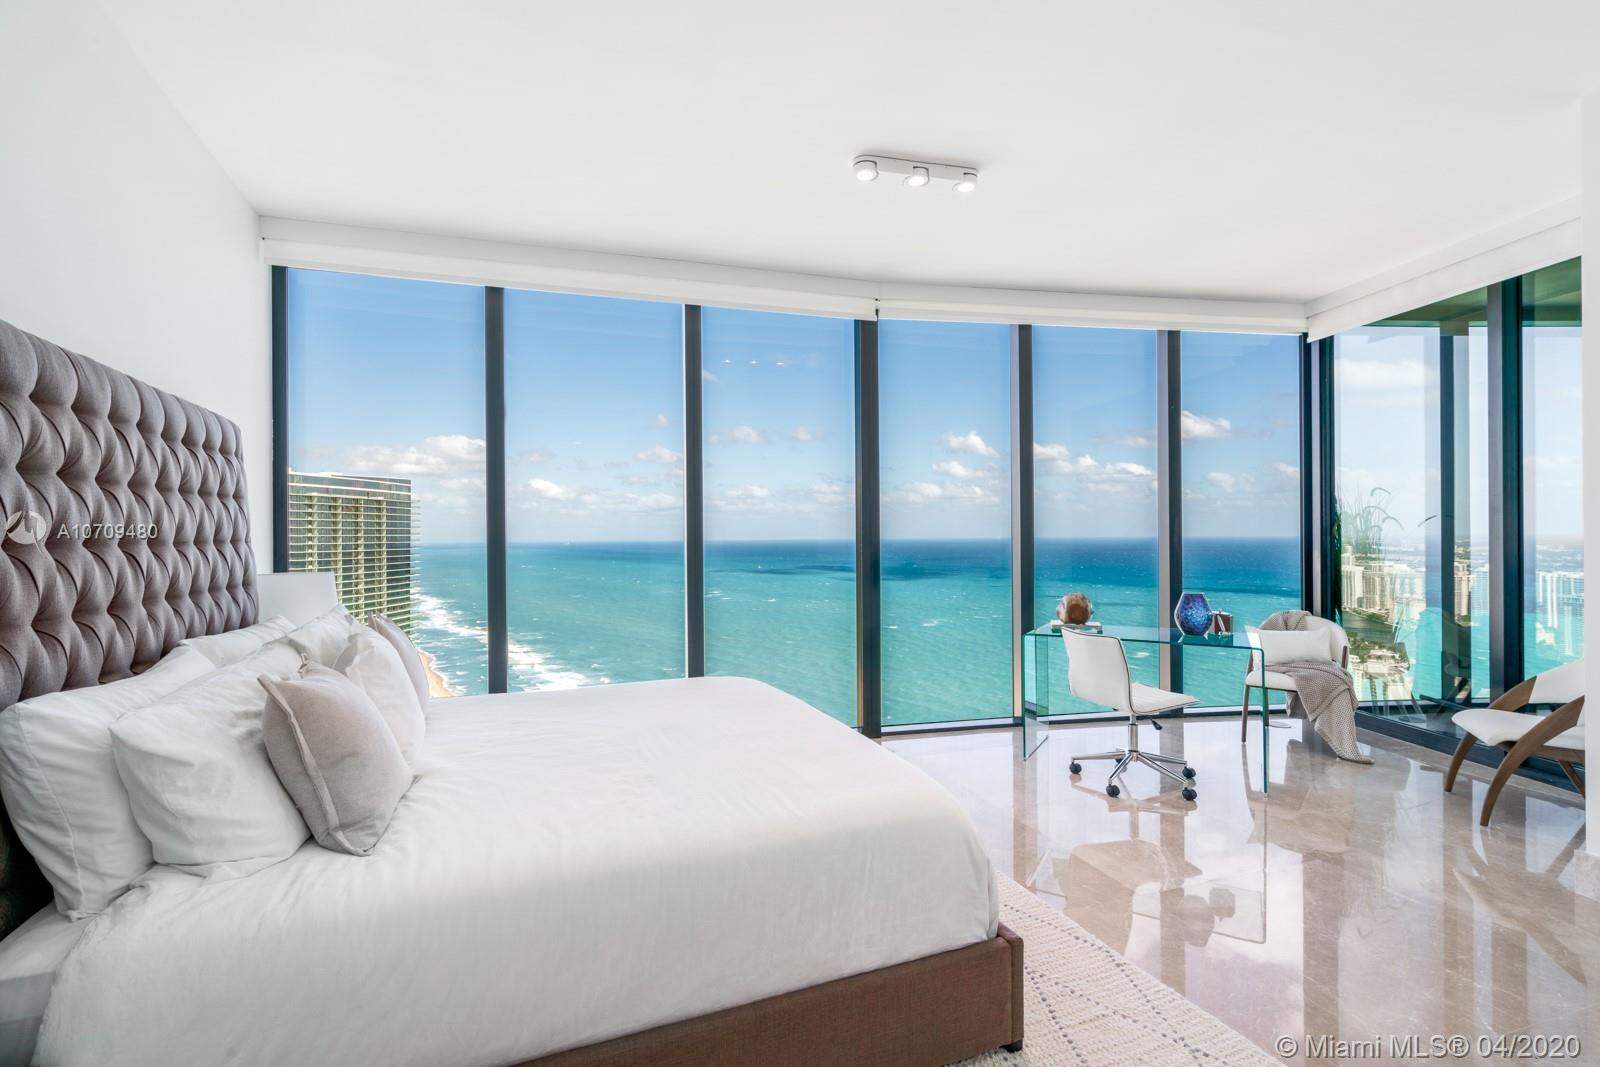 image #1 of property, 18555 Collins Avenue Cond, Unit 5105